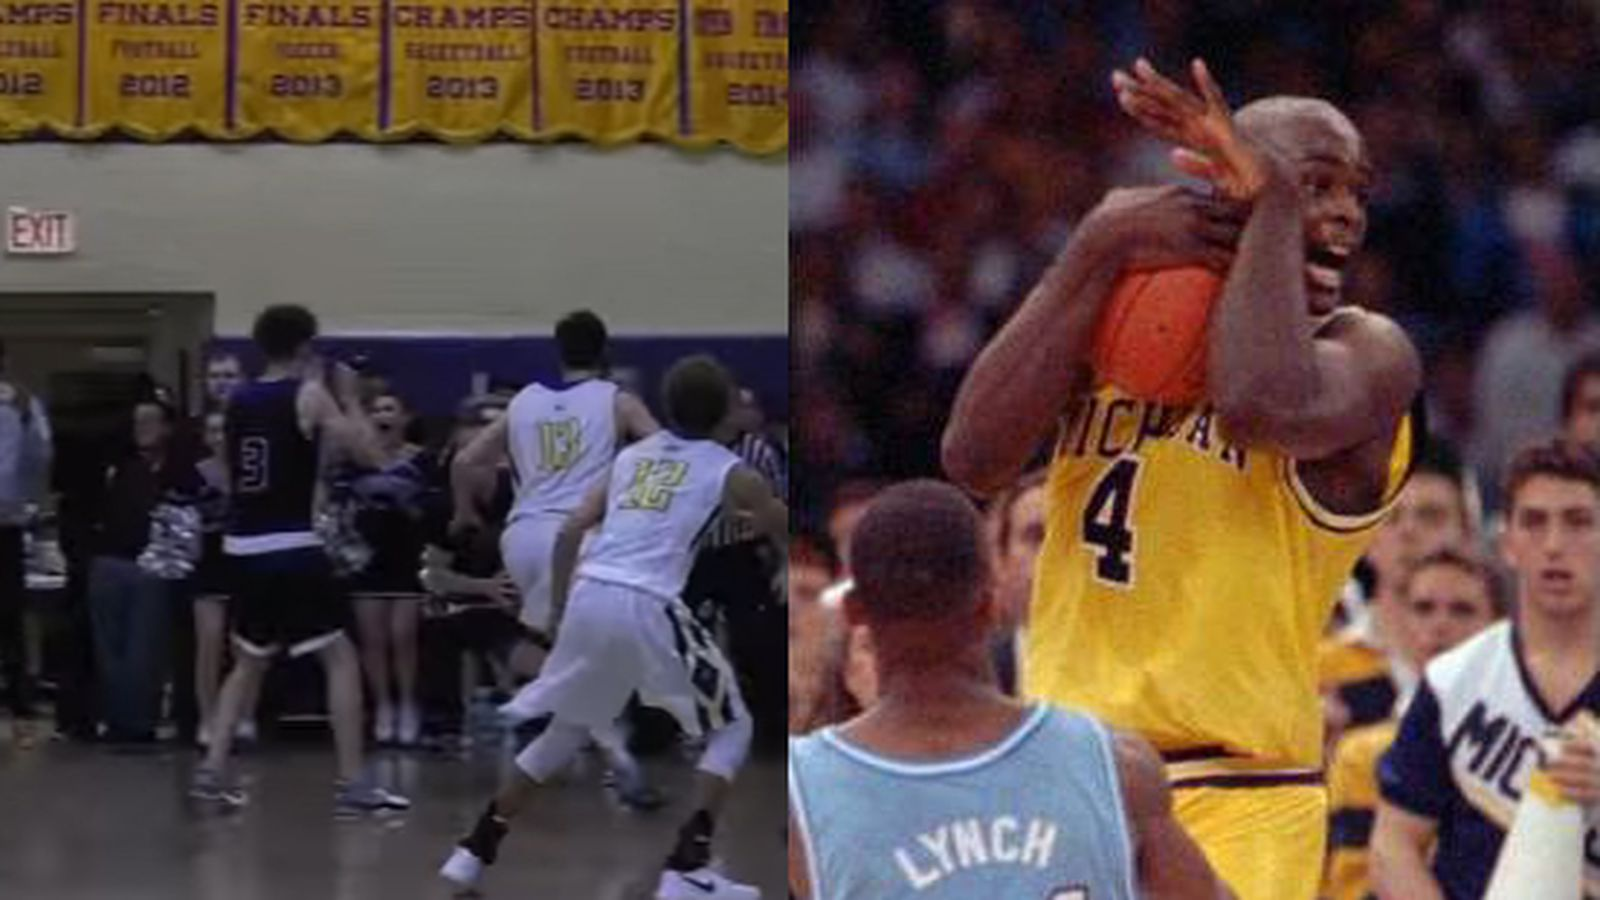 chaos erupts in high school basketball playoff after player calls illegal timeout like chris webber